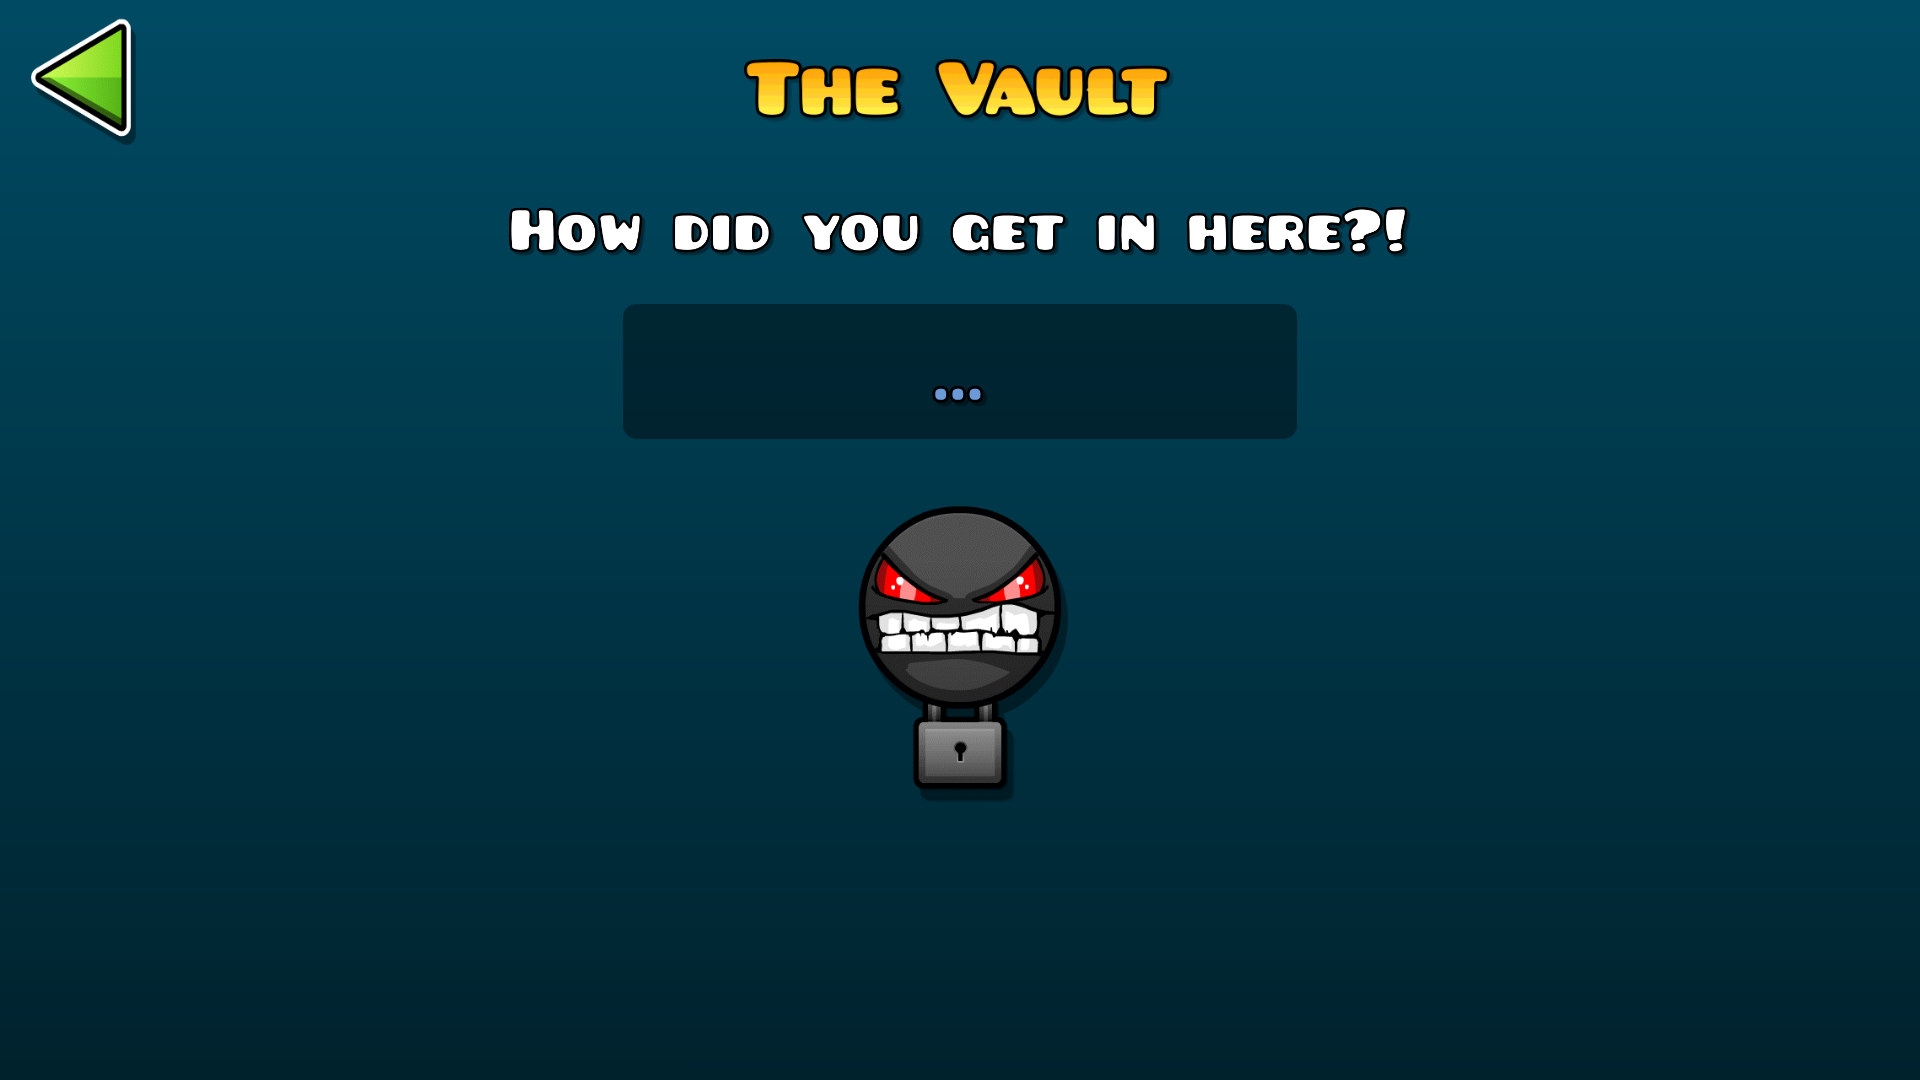 The Vault Is A Secret Feature Of Geometry Dash And Geometry Dash World,  Being Introduced In Update 2.0. It Is Located Through A Padlock In The  Upper Right ...